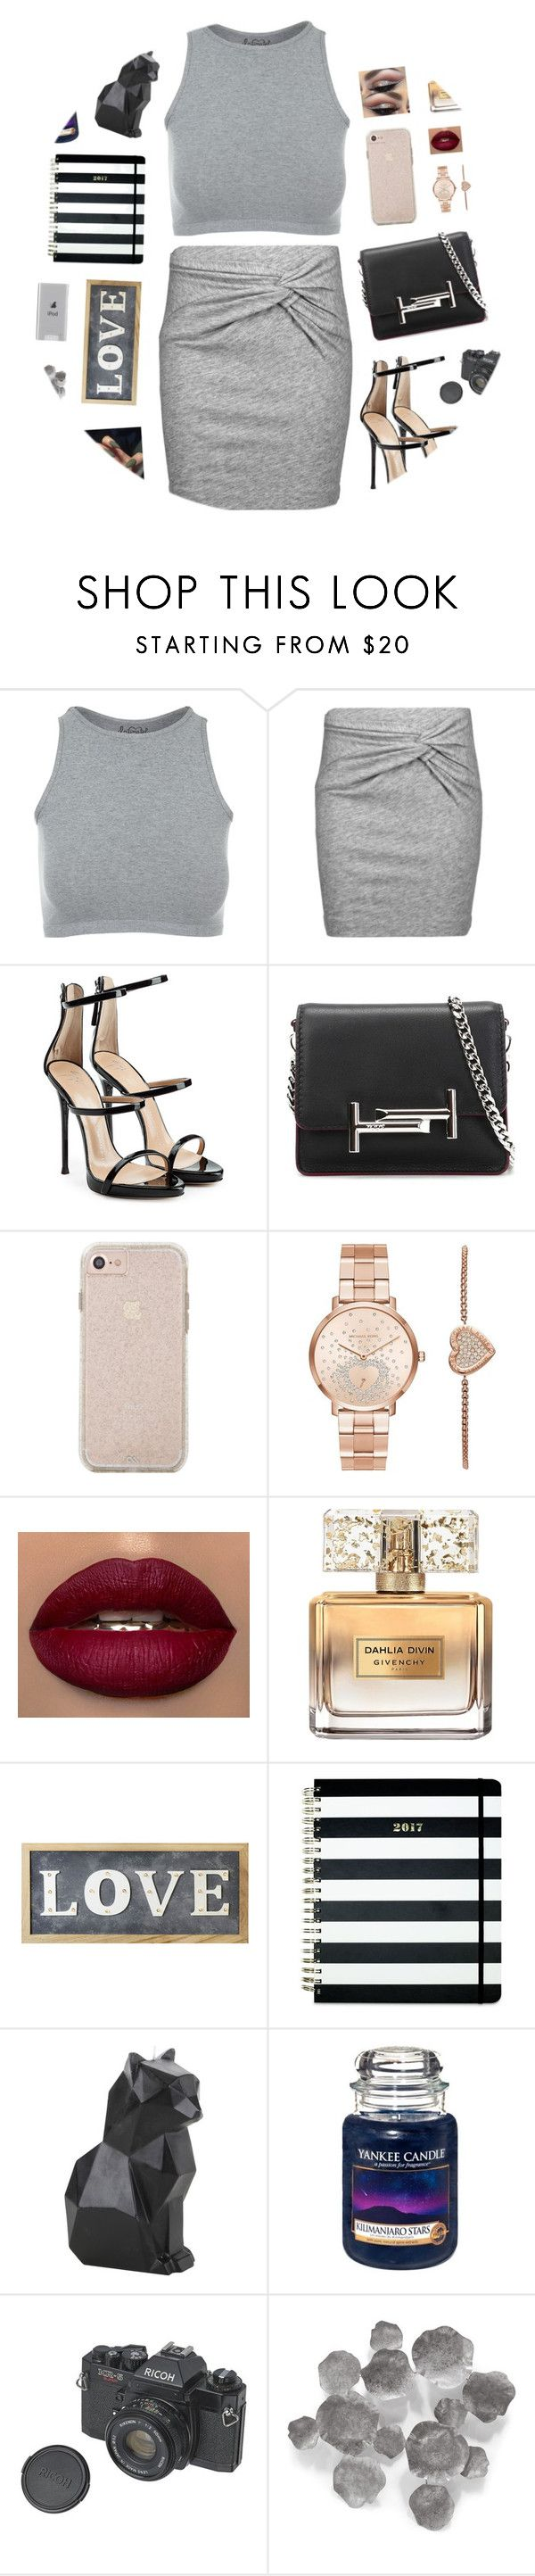 """Thank you for 4,800 followers🎉🎉🎉"" by victoria-pittore ❤ liked on Polyvore featuring Free People, IRO, Giuseppe Zanotti, Tod's, Michael Kors, Givenchy, Parlane, Kate Spade, Yankee Candle and Palecek"